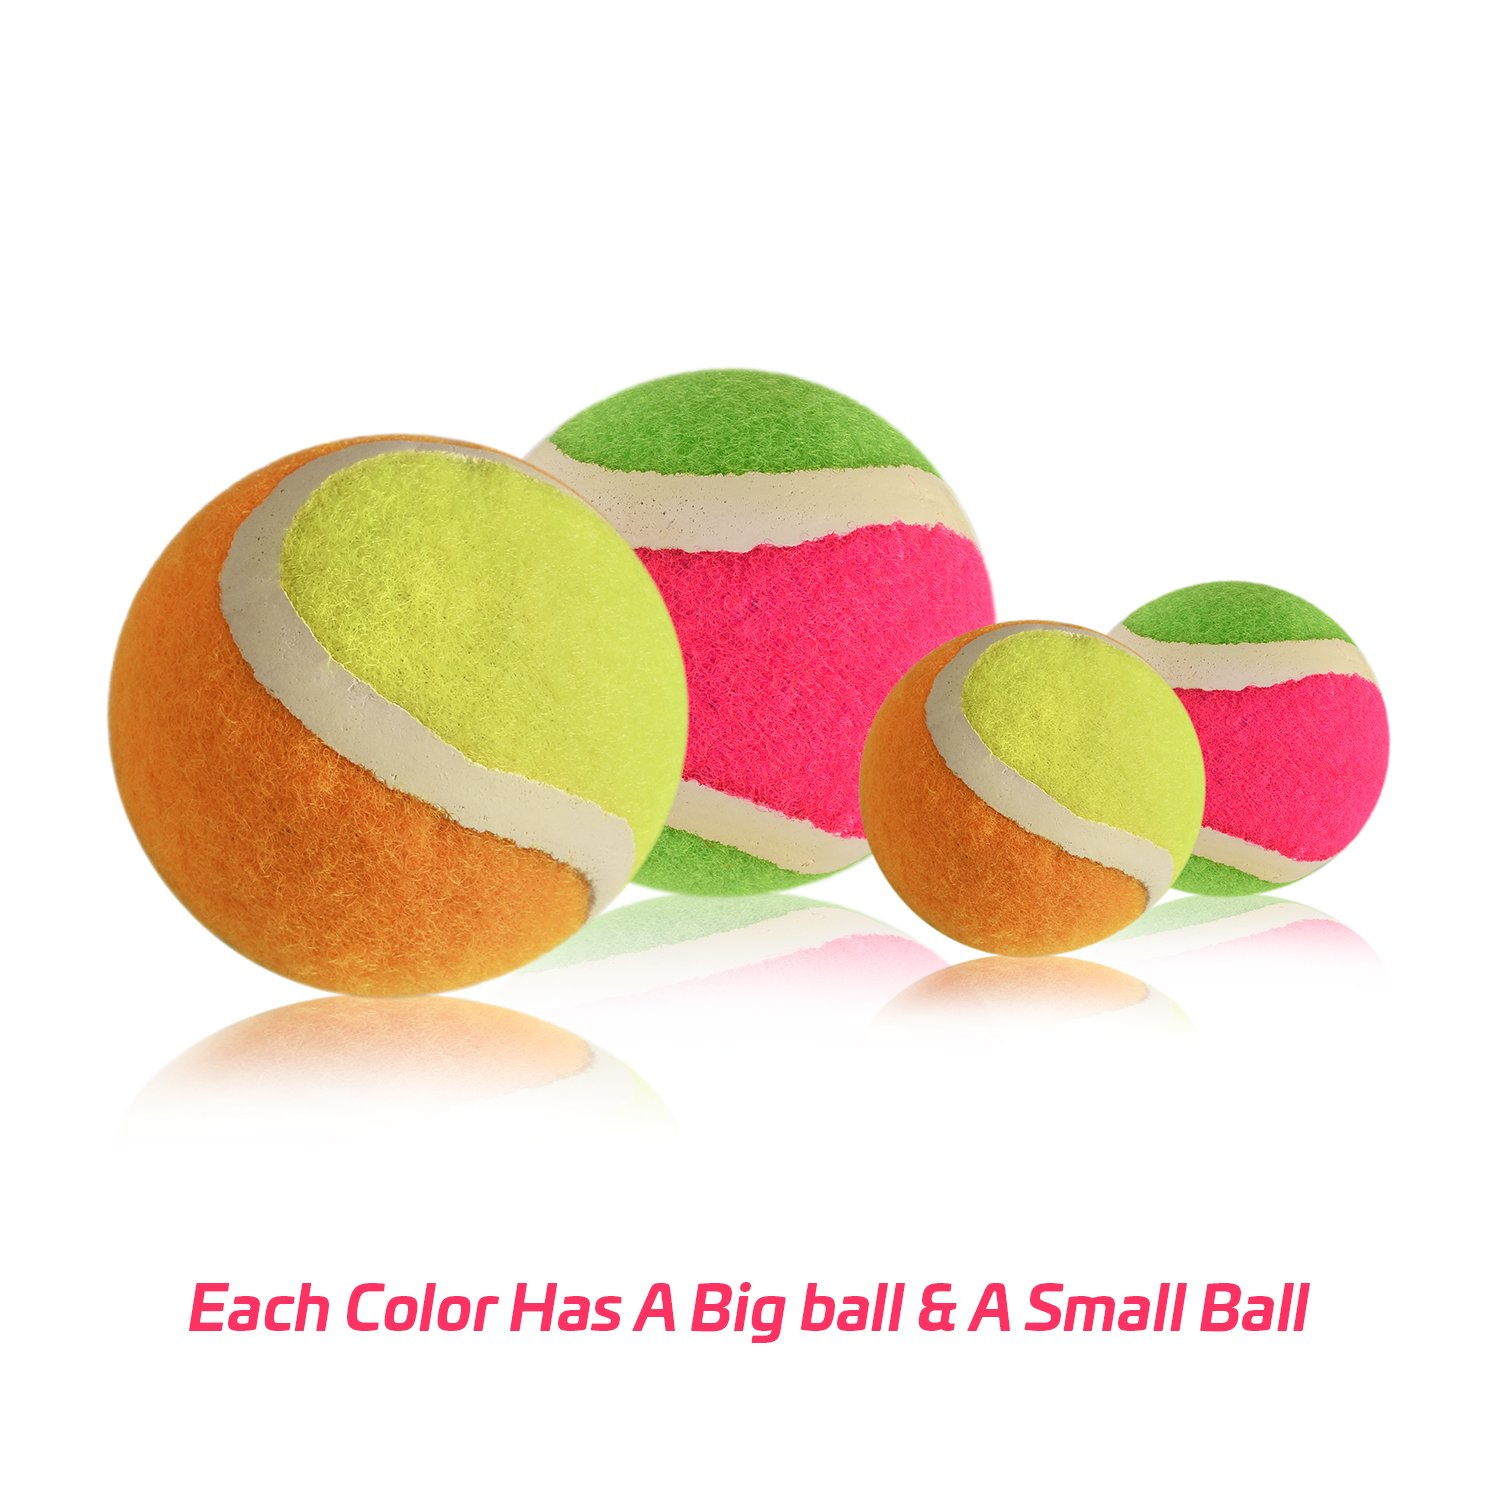 Abco Tech Paddle Toss and Catch Game Set - Self-Stick Disc Paddles and Toss Ball Sport Game - Equally Suitable Game for Kids by Abco Tech (Image #5)